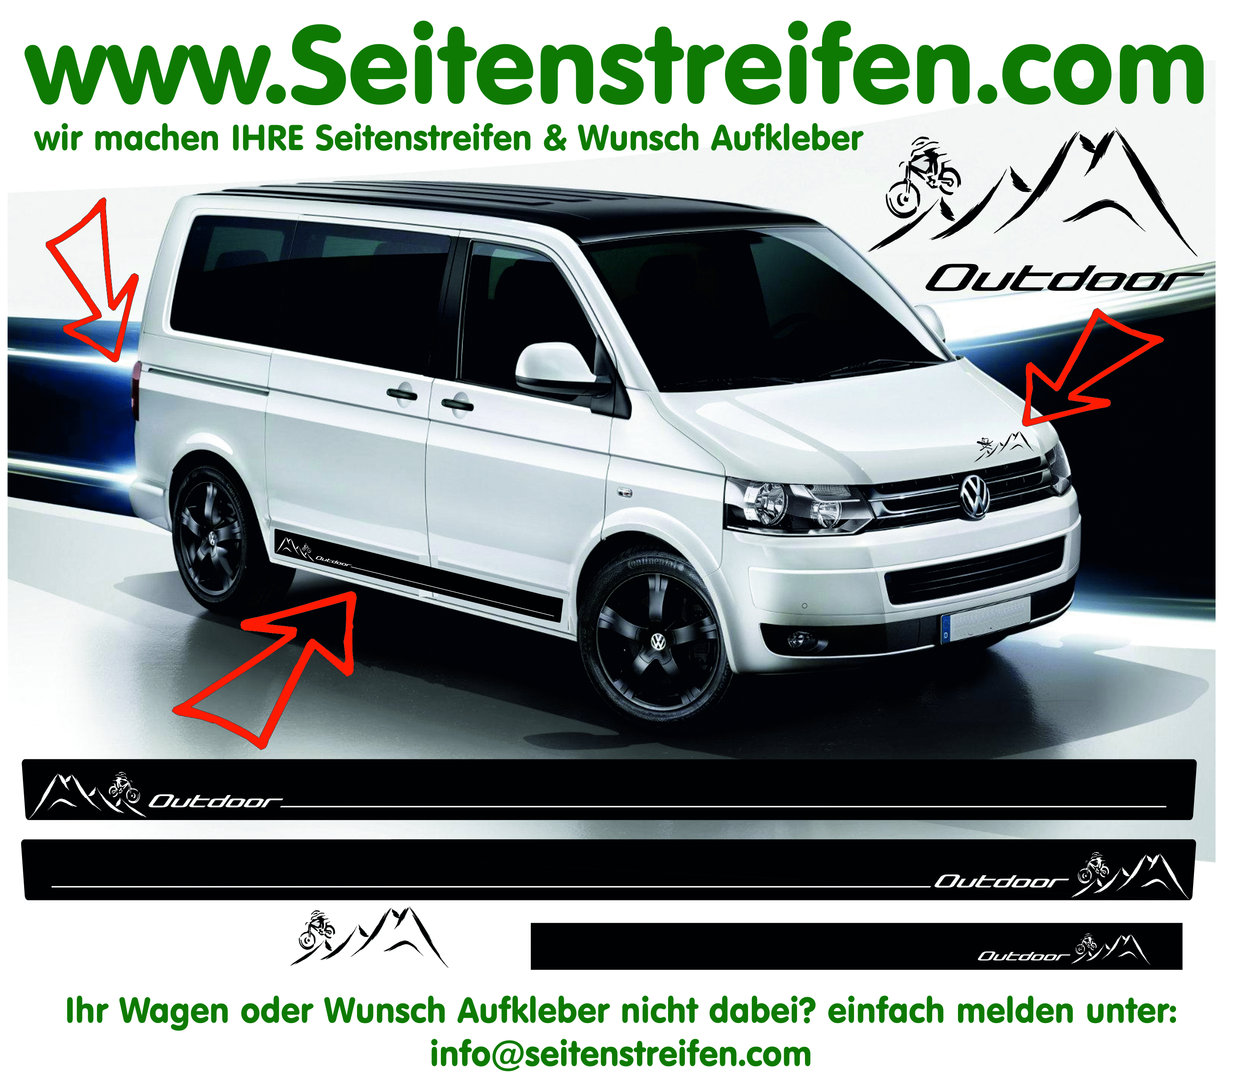 VW Bus T4 T5 Mountainbike Downhill Freeride edition - set de pegatinas laterales Set N° 3772